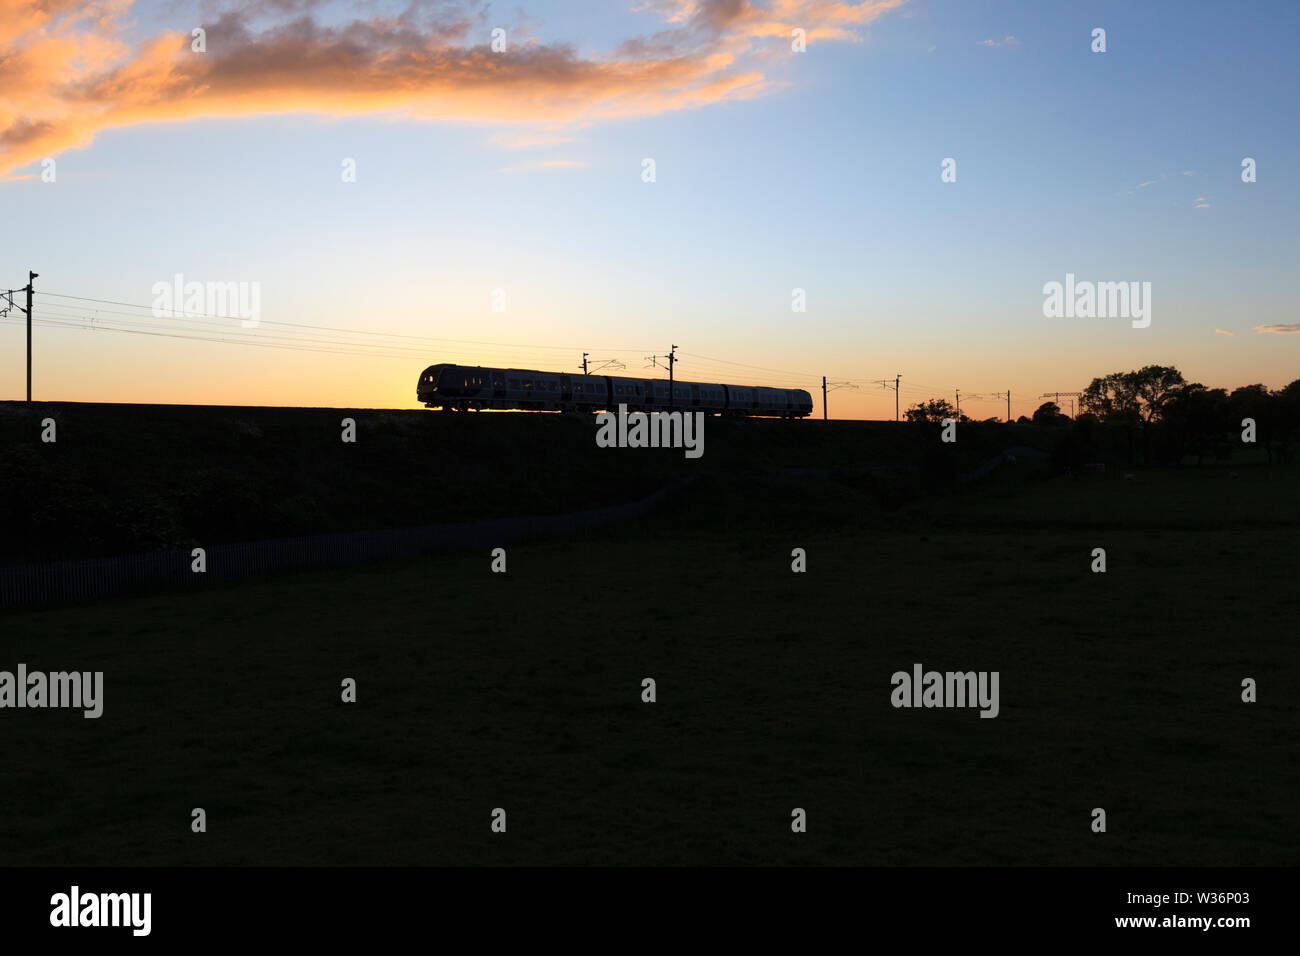 New CAF class 195 train for Arriva Northern Rail making a silhouette at sunset on the west coast main line while on a driver training run Stock Photo